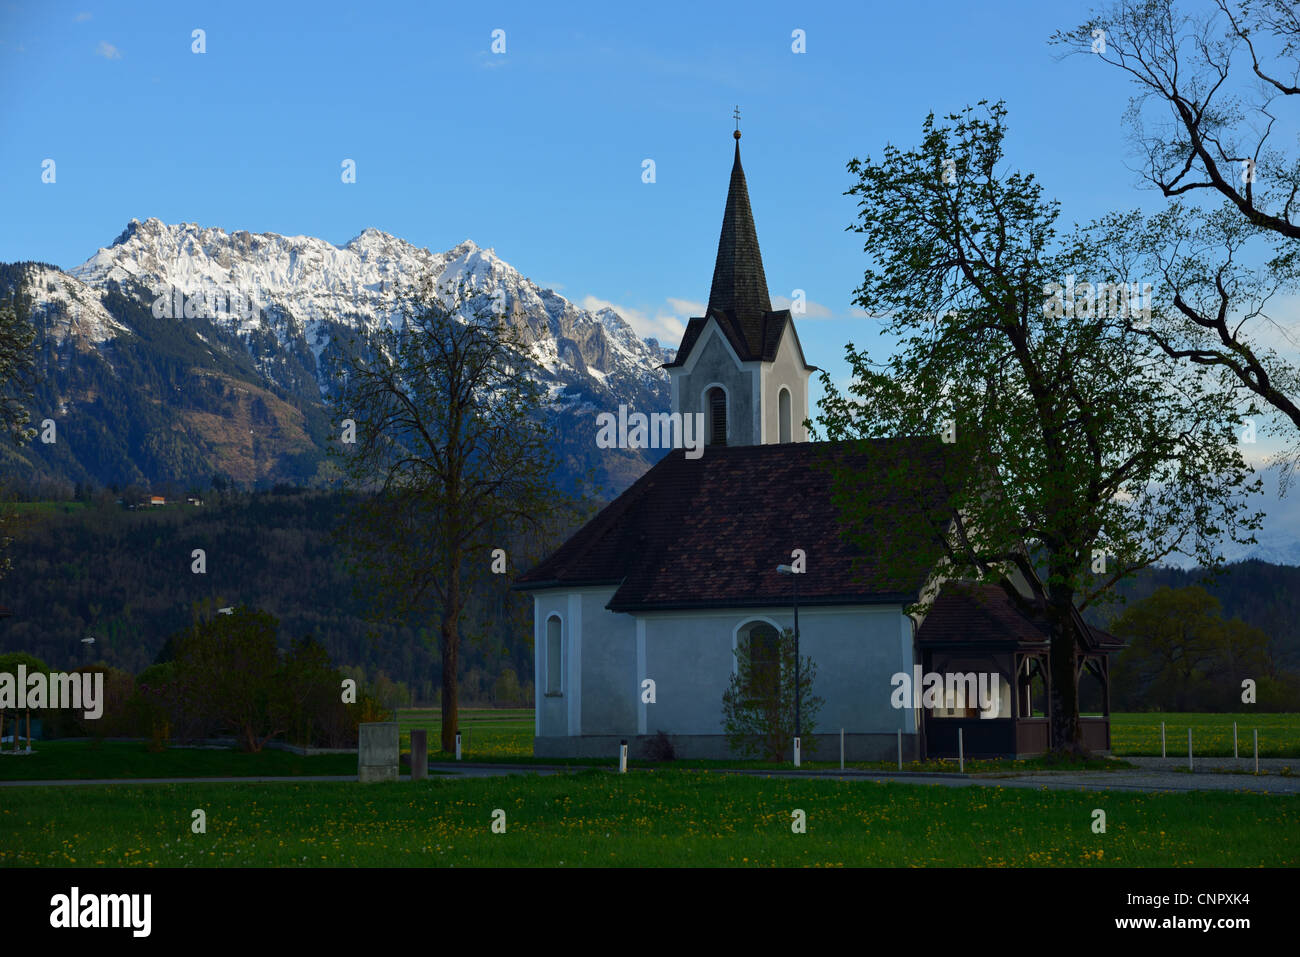 The country church of Bangs (Austria) against the three sisters mountain in Liechtenstein, FL Stock Photo